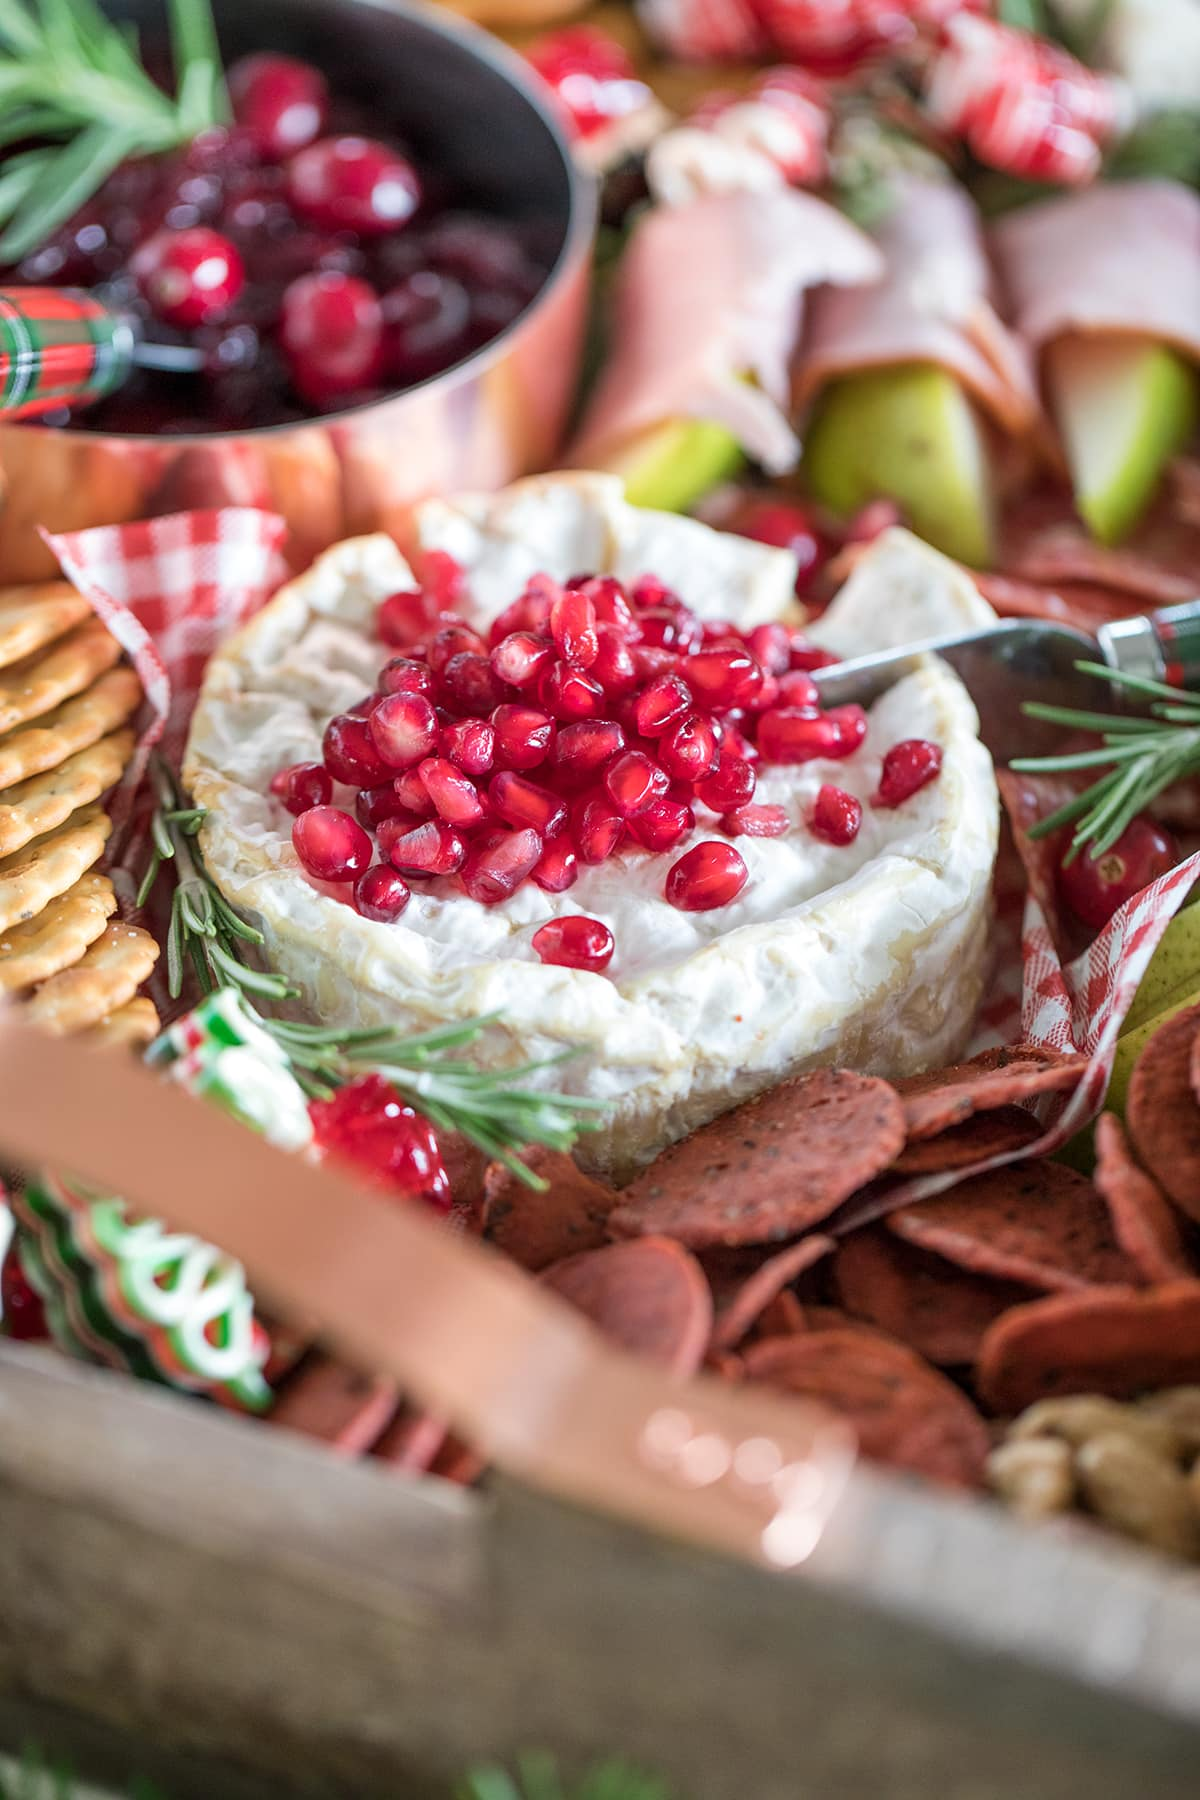 How to Make a Christmas Cheese Board